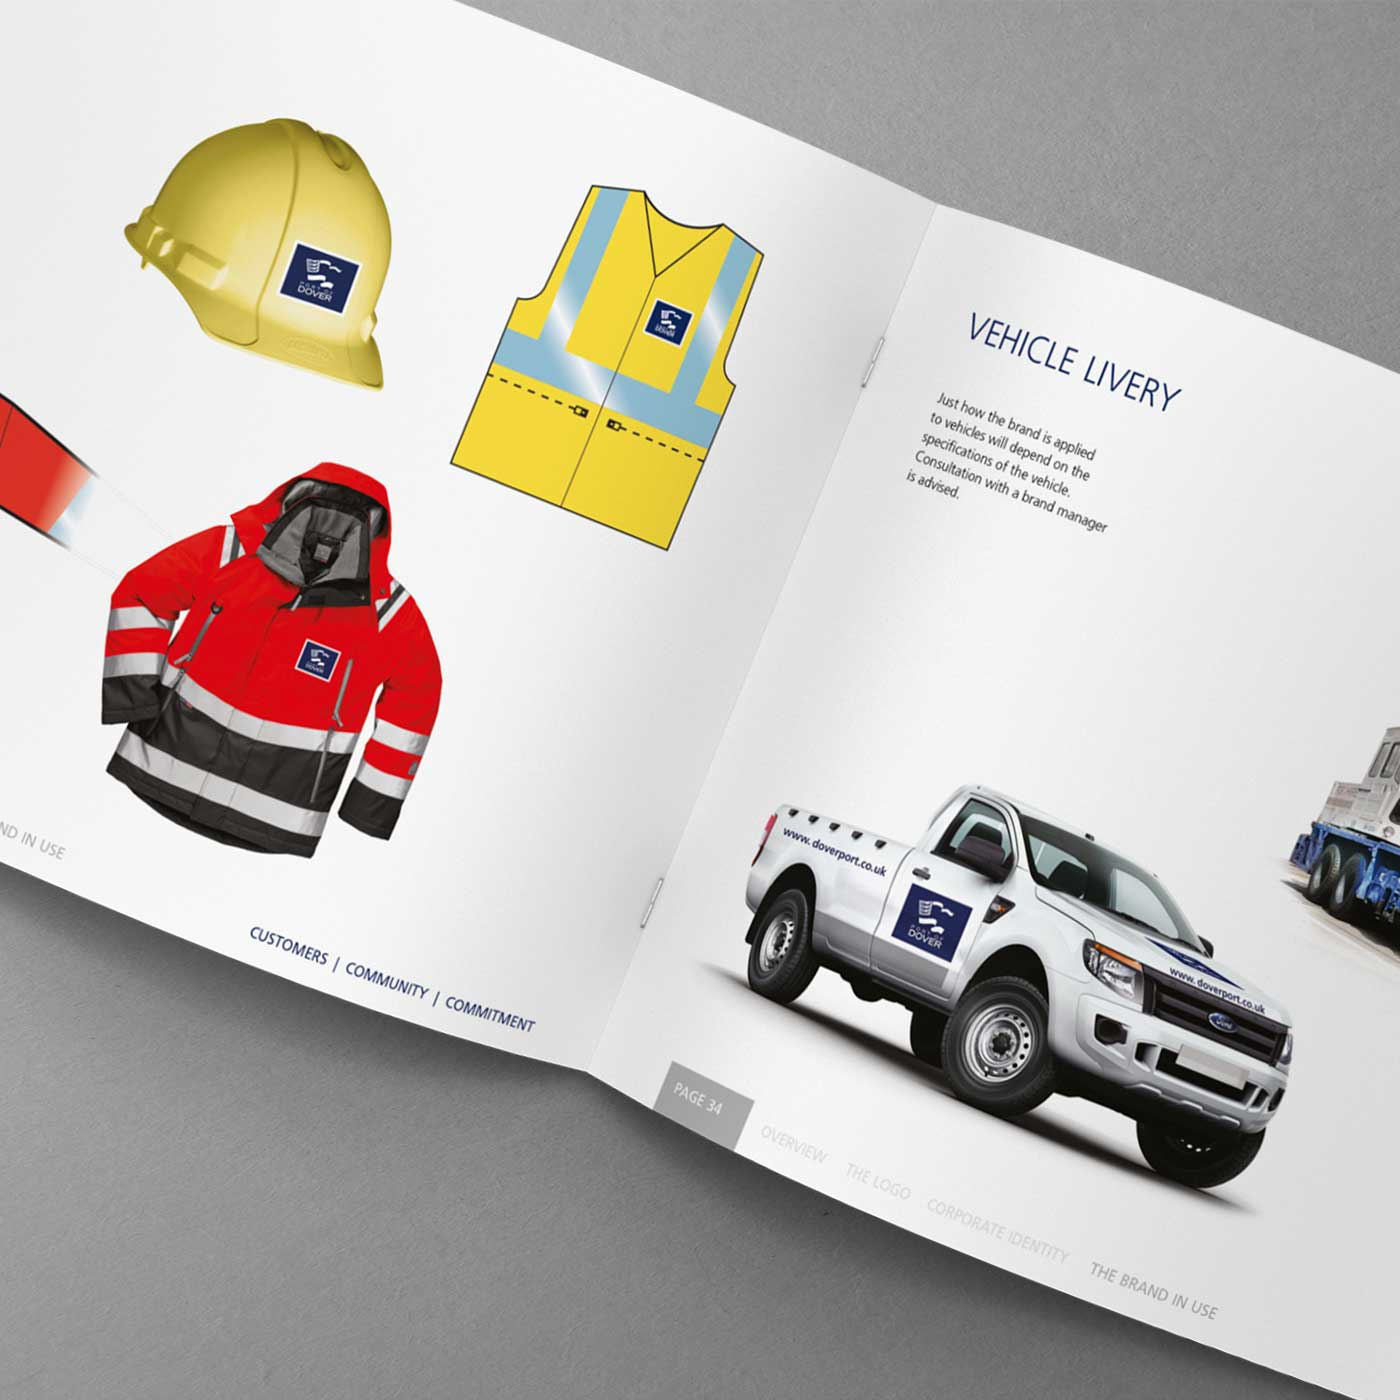 Port of Dover Brand Guidelines - Vehicle Livery